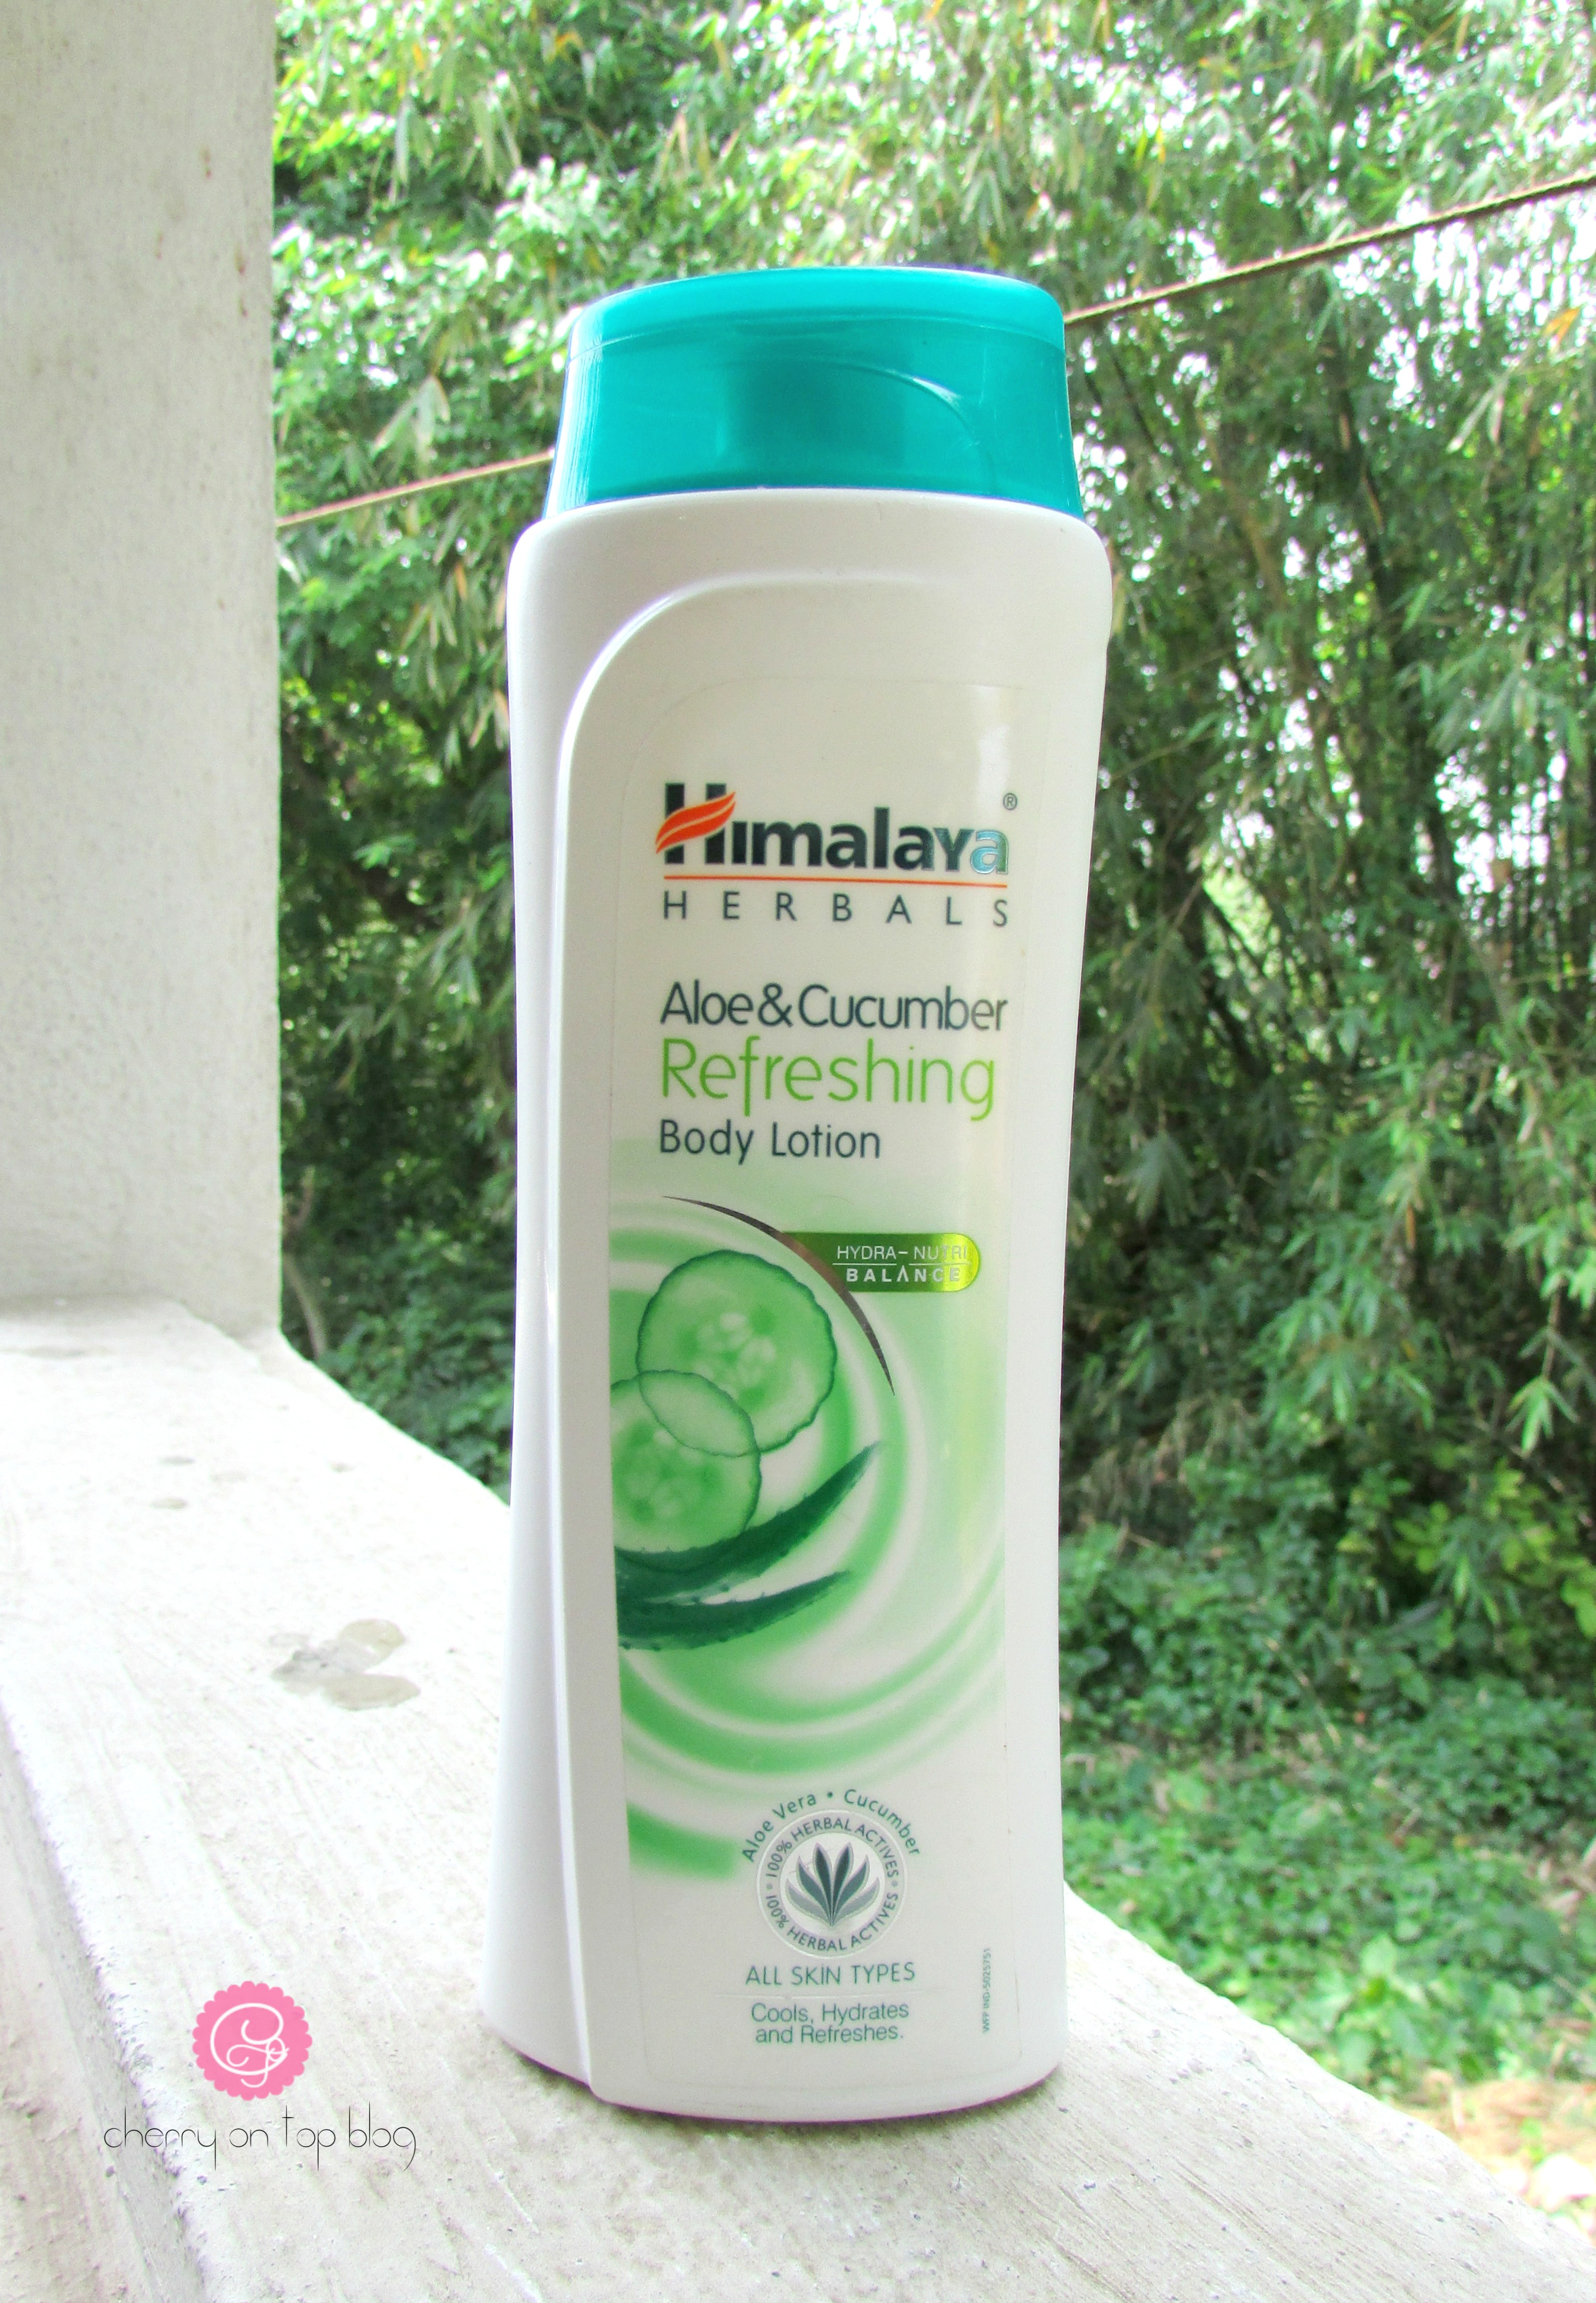 Himalaya Herbals Aloe & Cucumber Refreshing Body Lotion Review| cherryontopblog.com